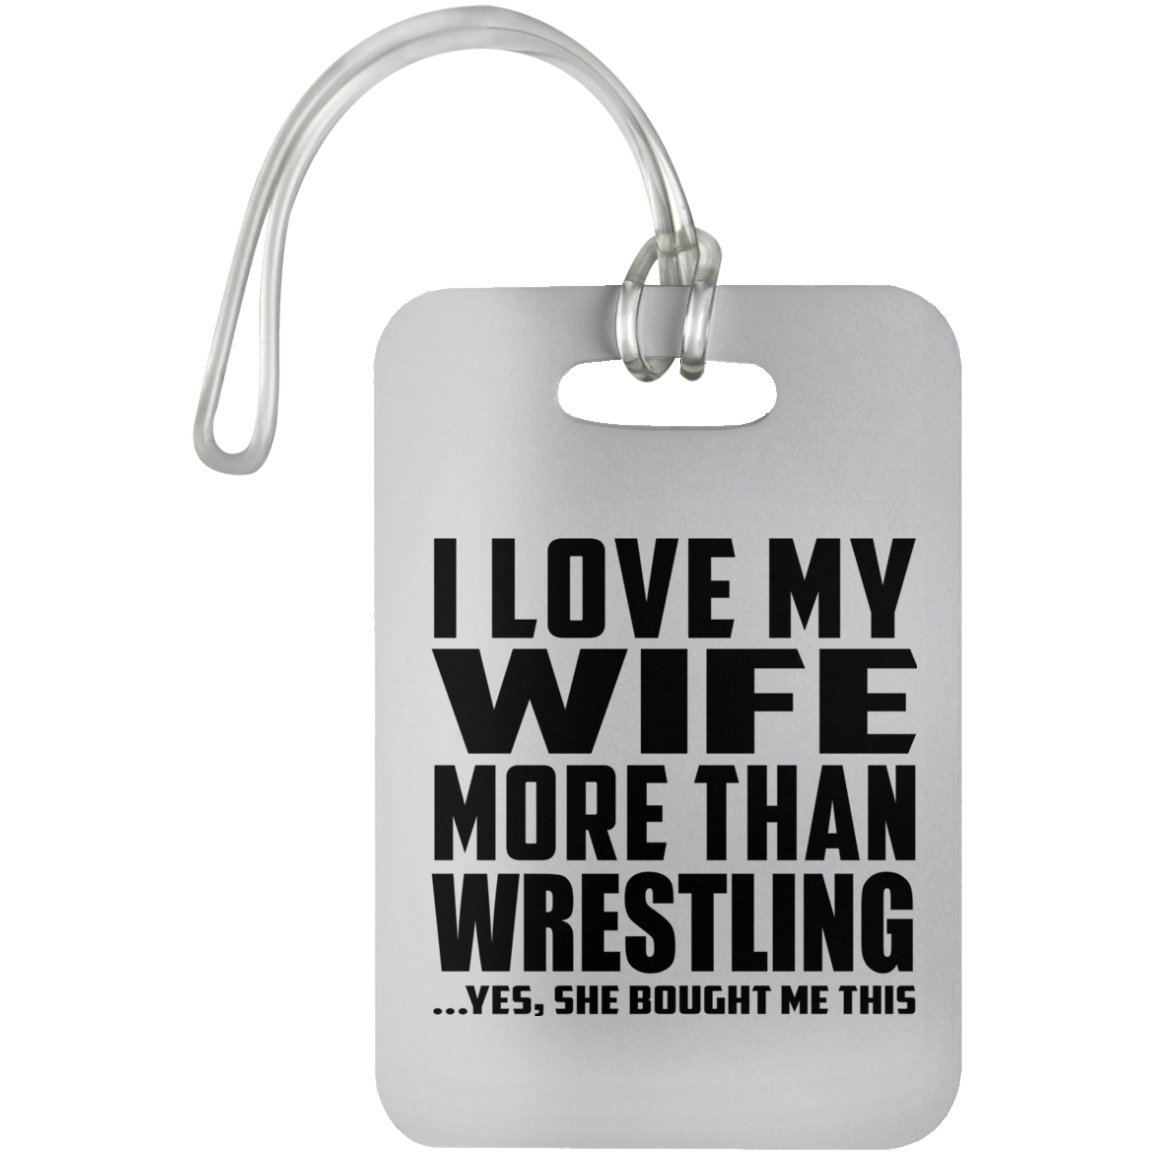 I Love My Wife More Than Wrestling .Yes, She Bought Me This - Luggage Tag, Suitcase Bag ID Tag